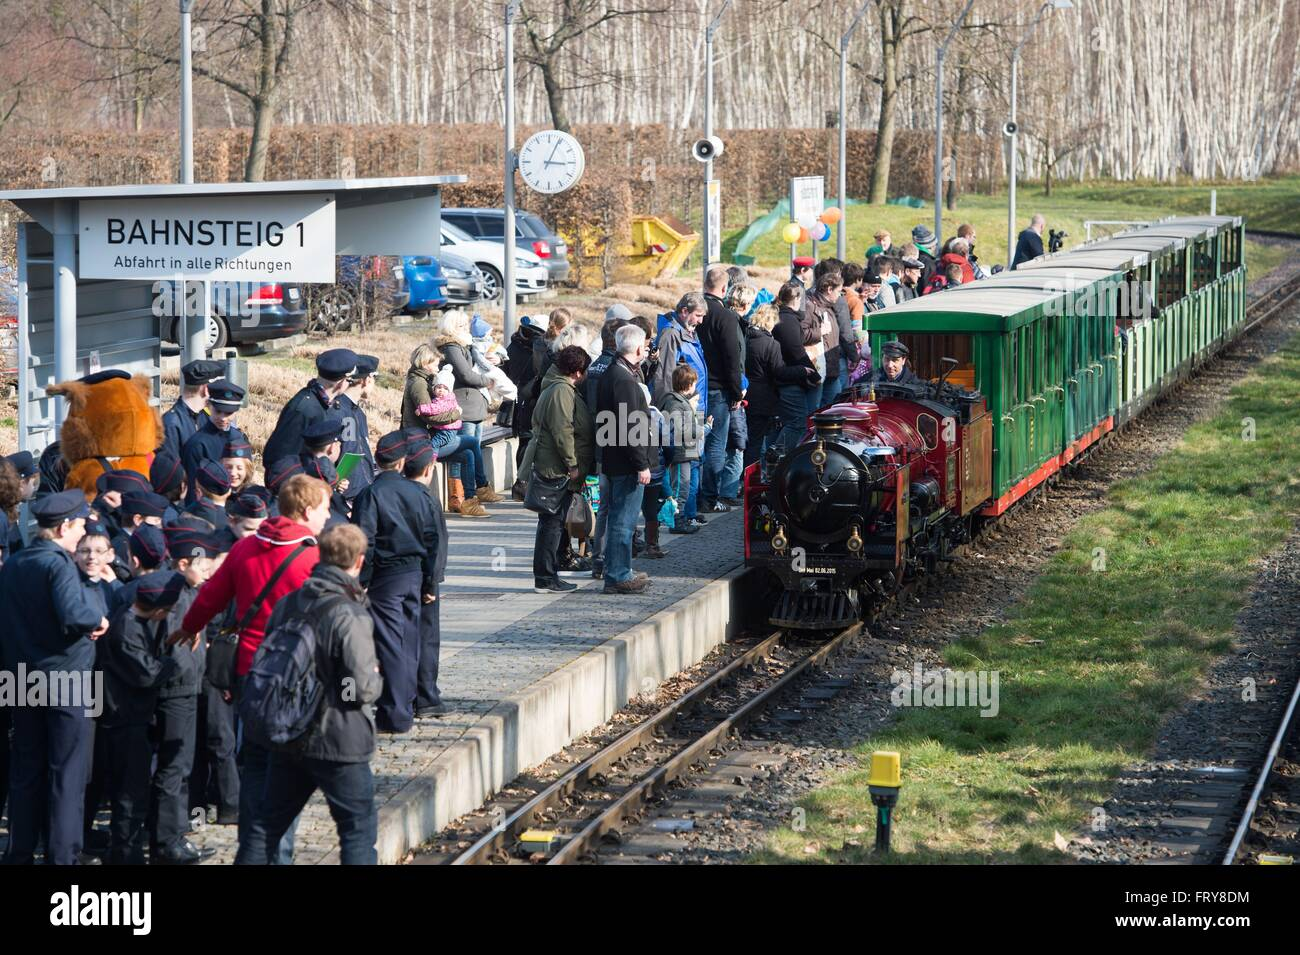 Dresden, Germany. 24th Mar, 2016. A steam locomotive of the Dresden park railway approaches a station in the public - Stock Image